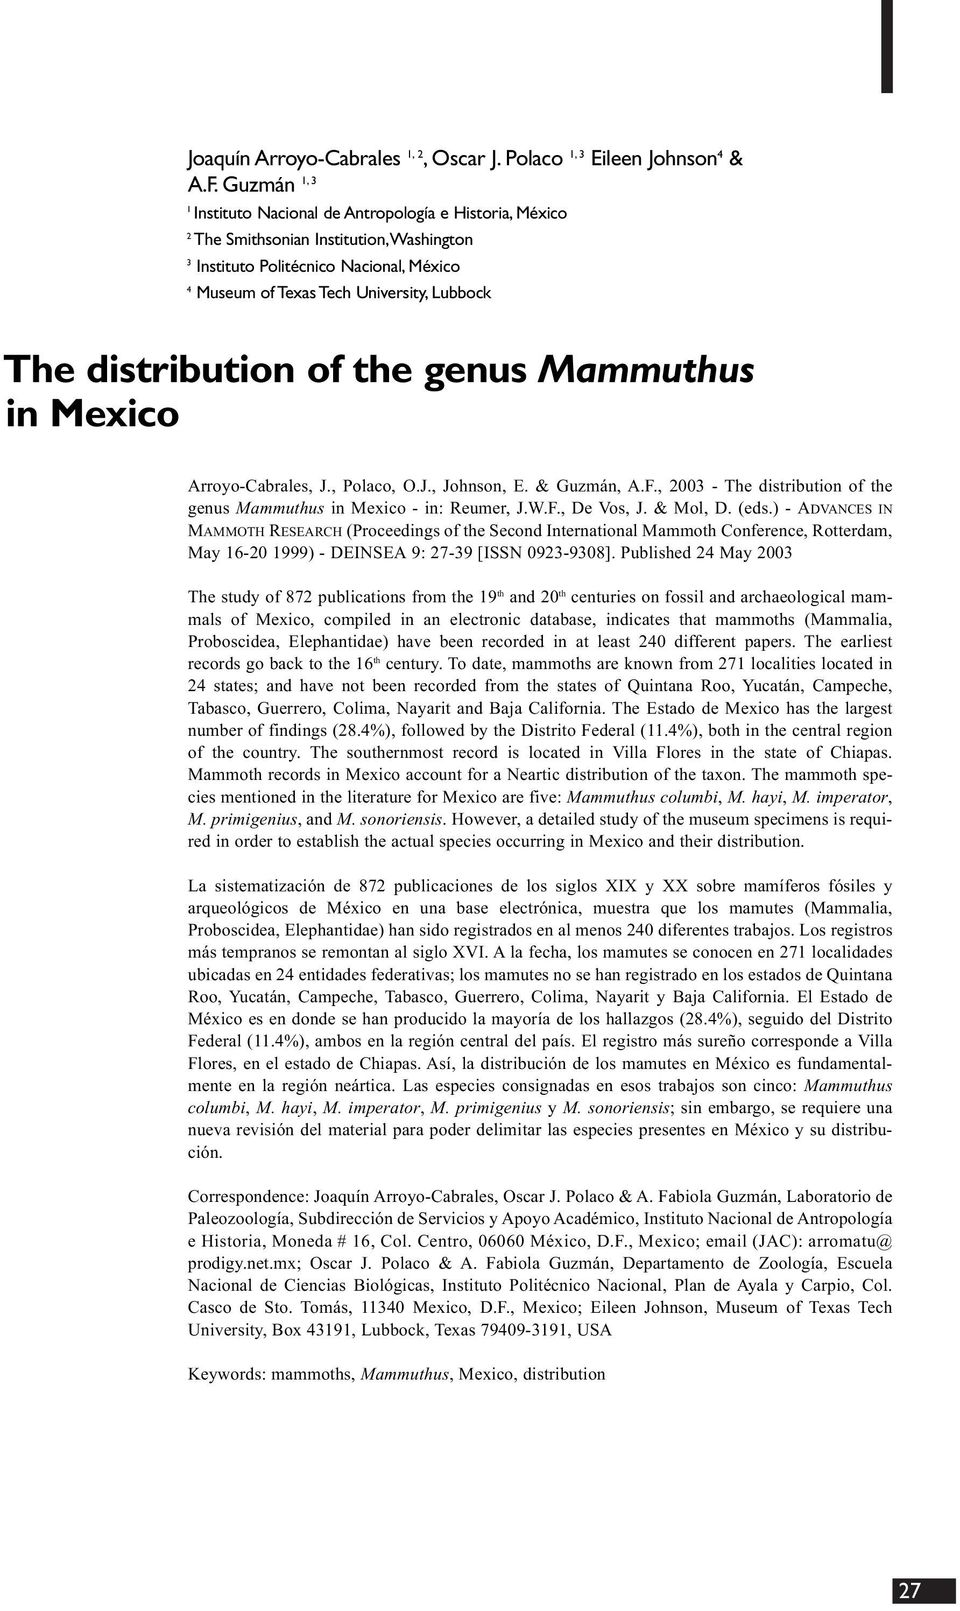 distribution of the genus Mammuthus in Mexico Arroyo-Cabrales, J., Polaco, O.J., Johnson, E. & Guzmán, A.F., 2003 - The distribution of the genus Mammuthus in Mexico - in: Reumer, J.W.F., De Vos, J.